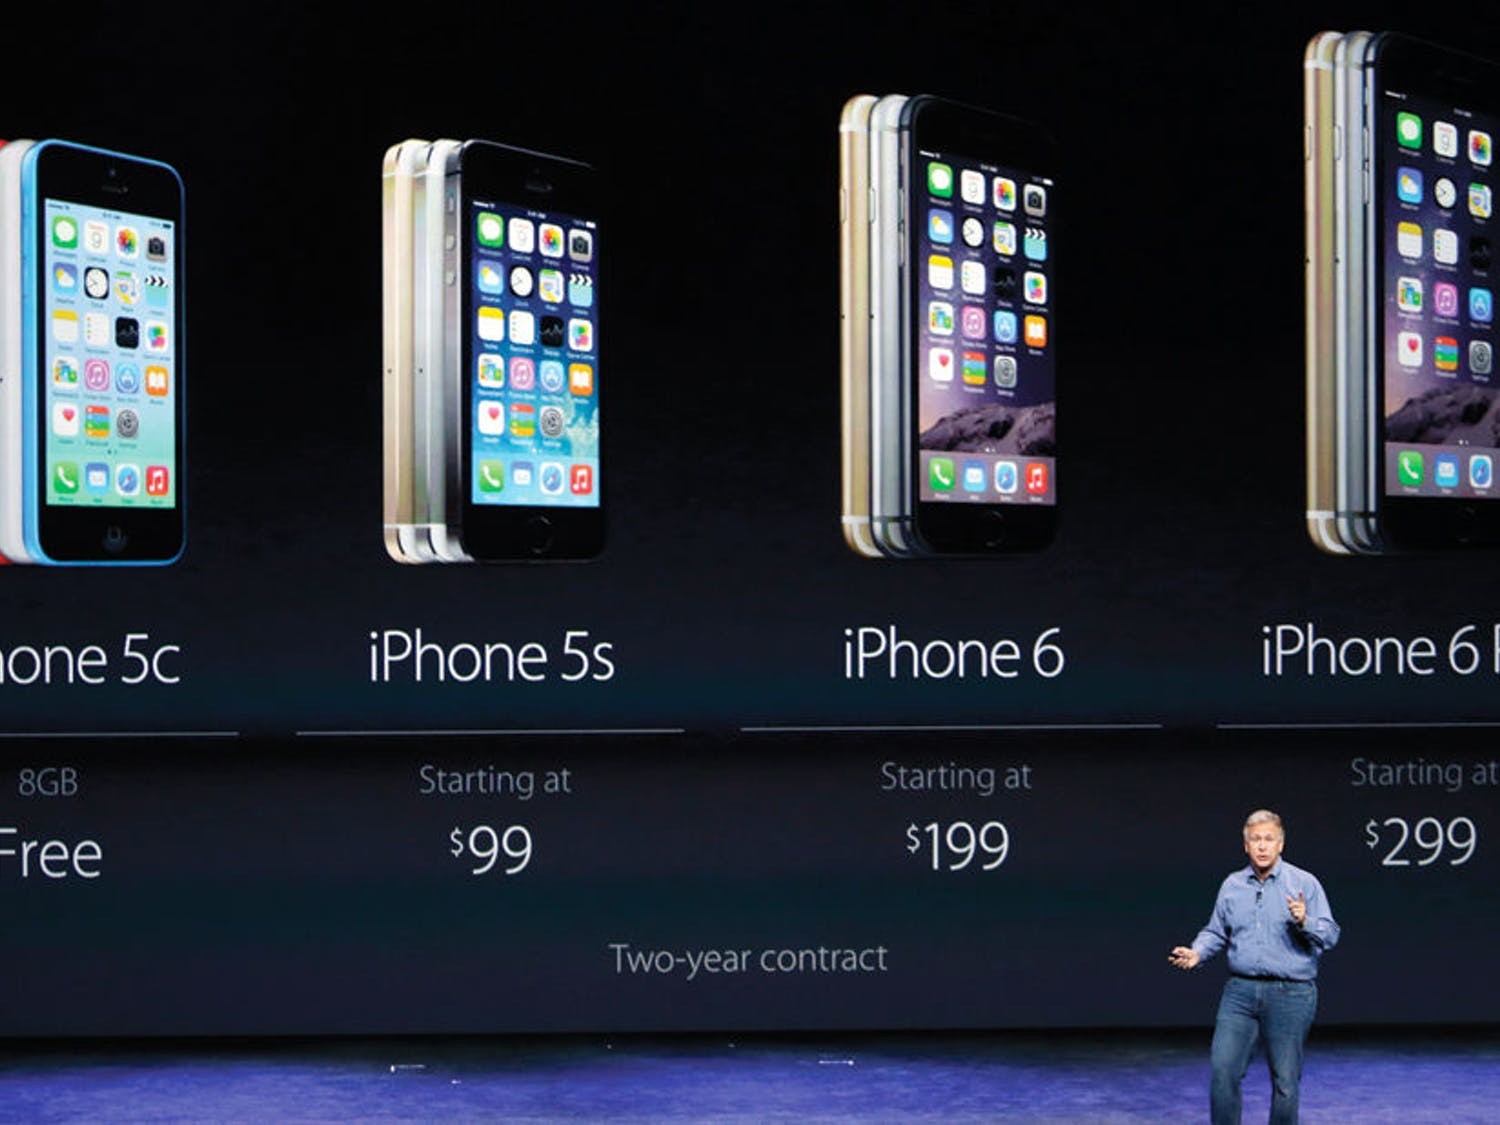 Phil Schiller, Apple's senior vice president of worldwide product marketing, discusses the costs of the new iPhone 6 and iPhone 6 plus on Tuesday, Sept. 9, 2014, in Cupertino, Calif. (AP Photo/Marcio Jose Sanchez)